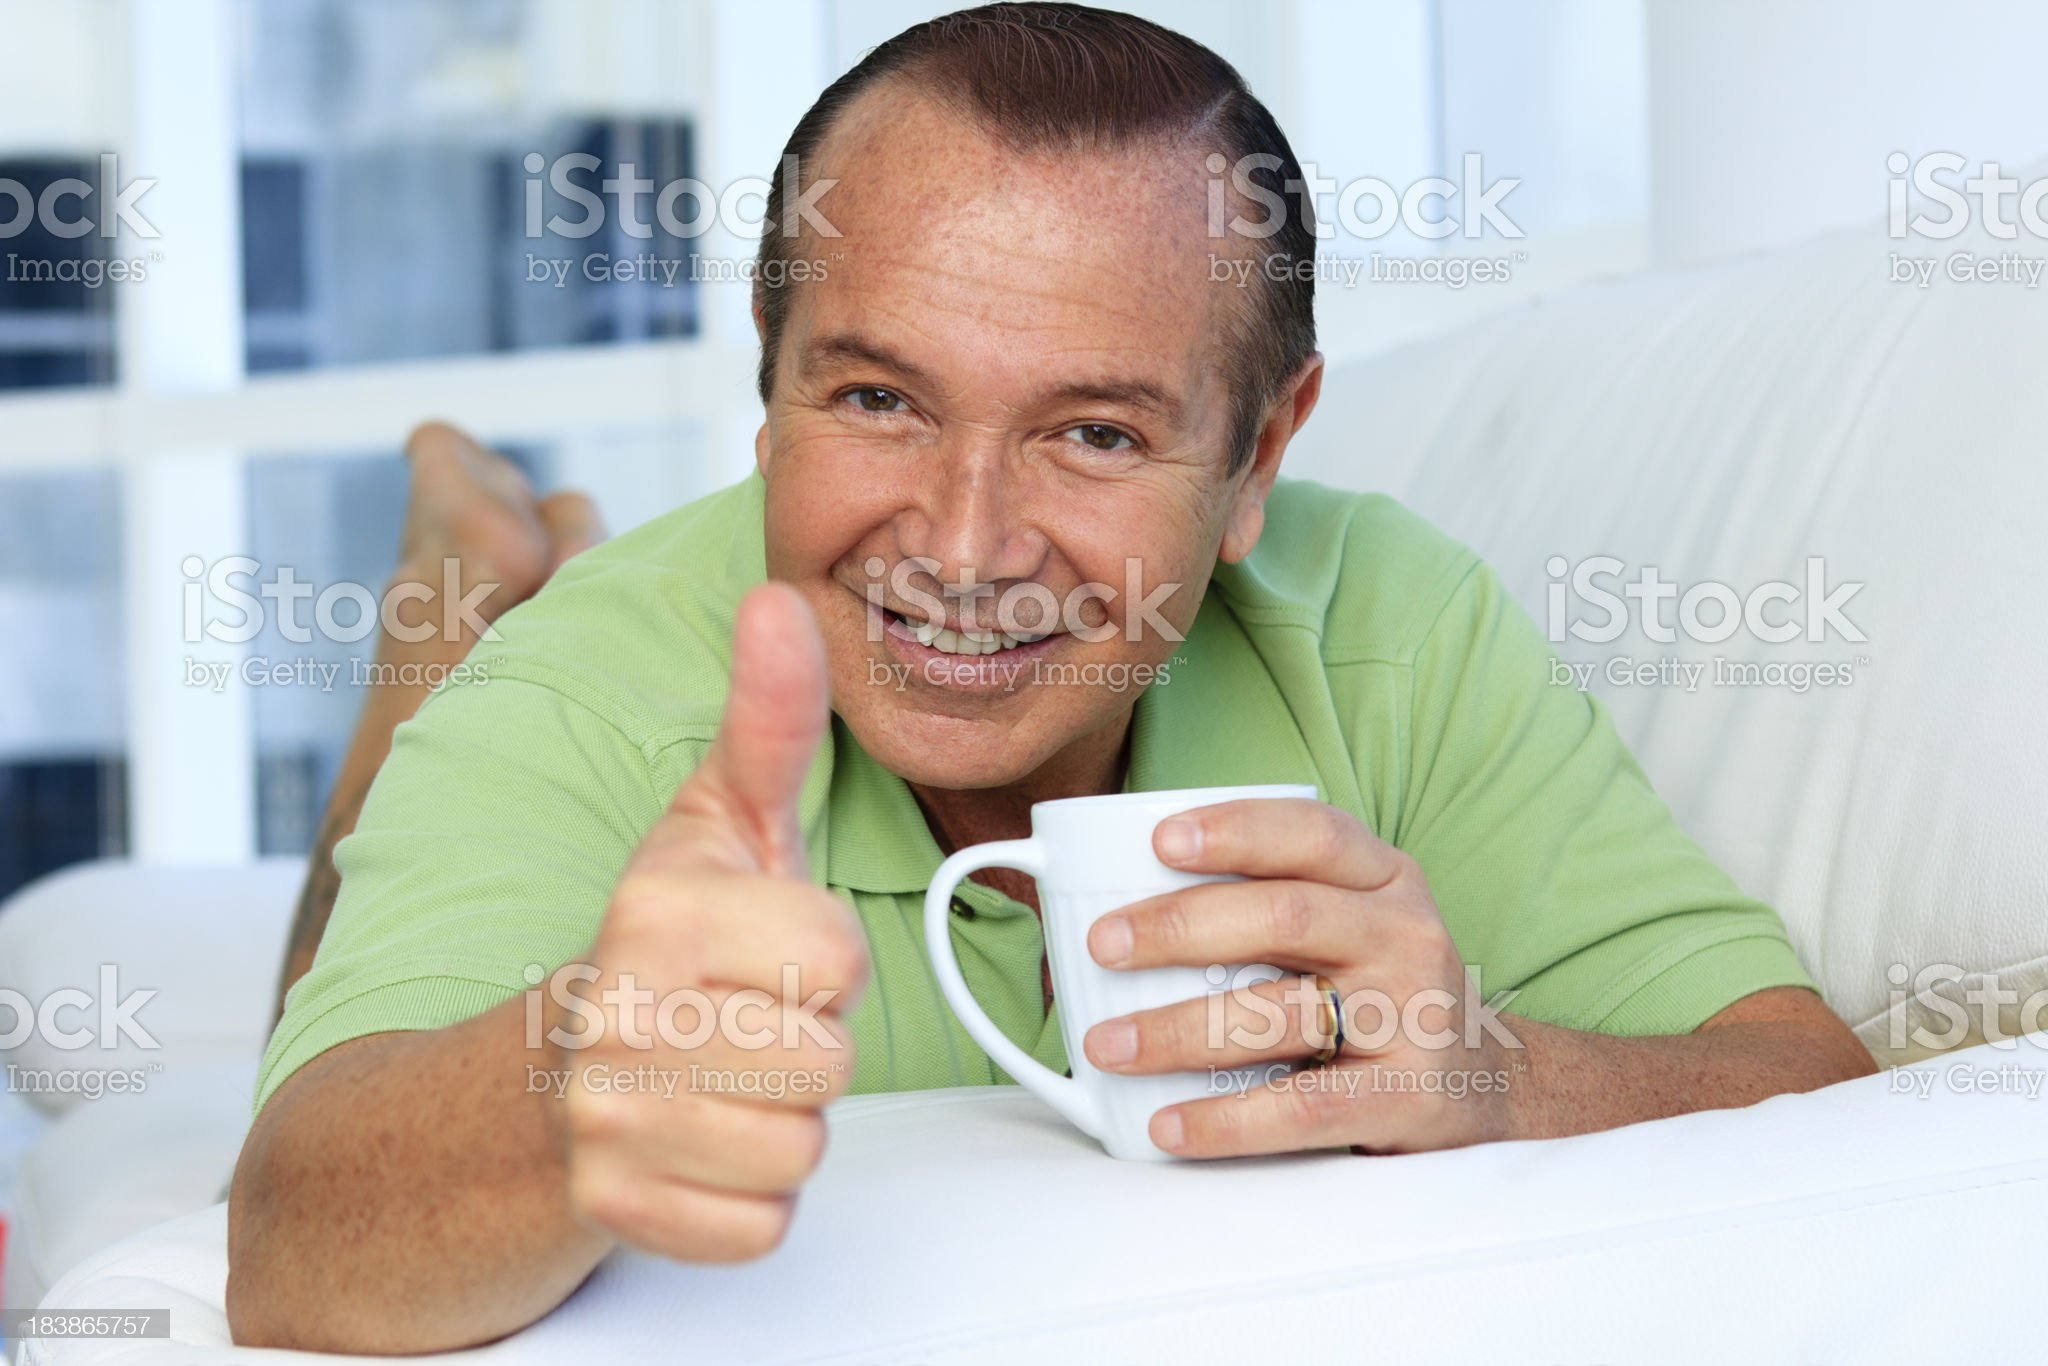 Mid adult male with cup of coffee and thumbs up royalty-free stock photo